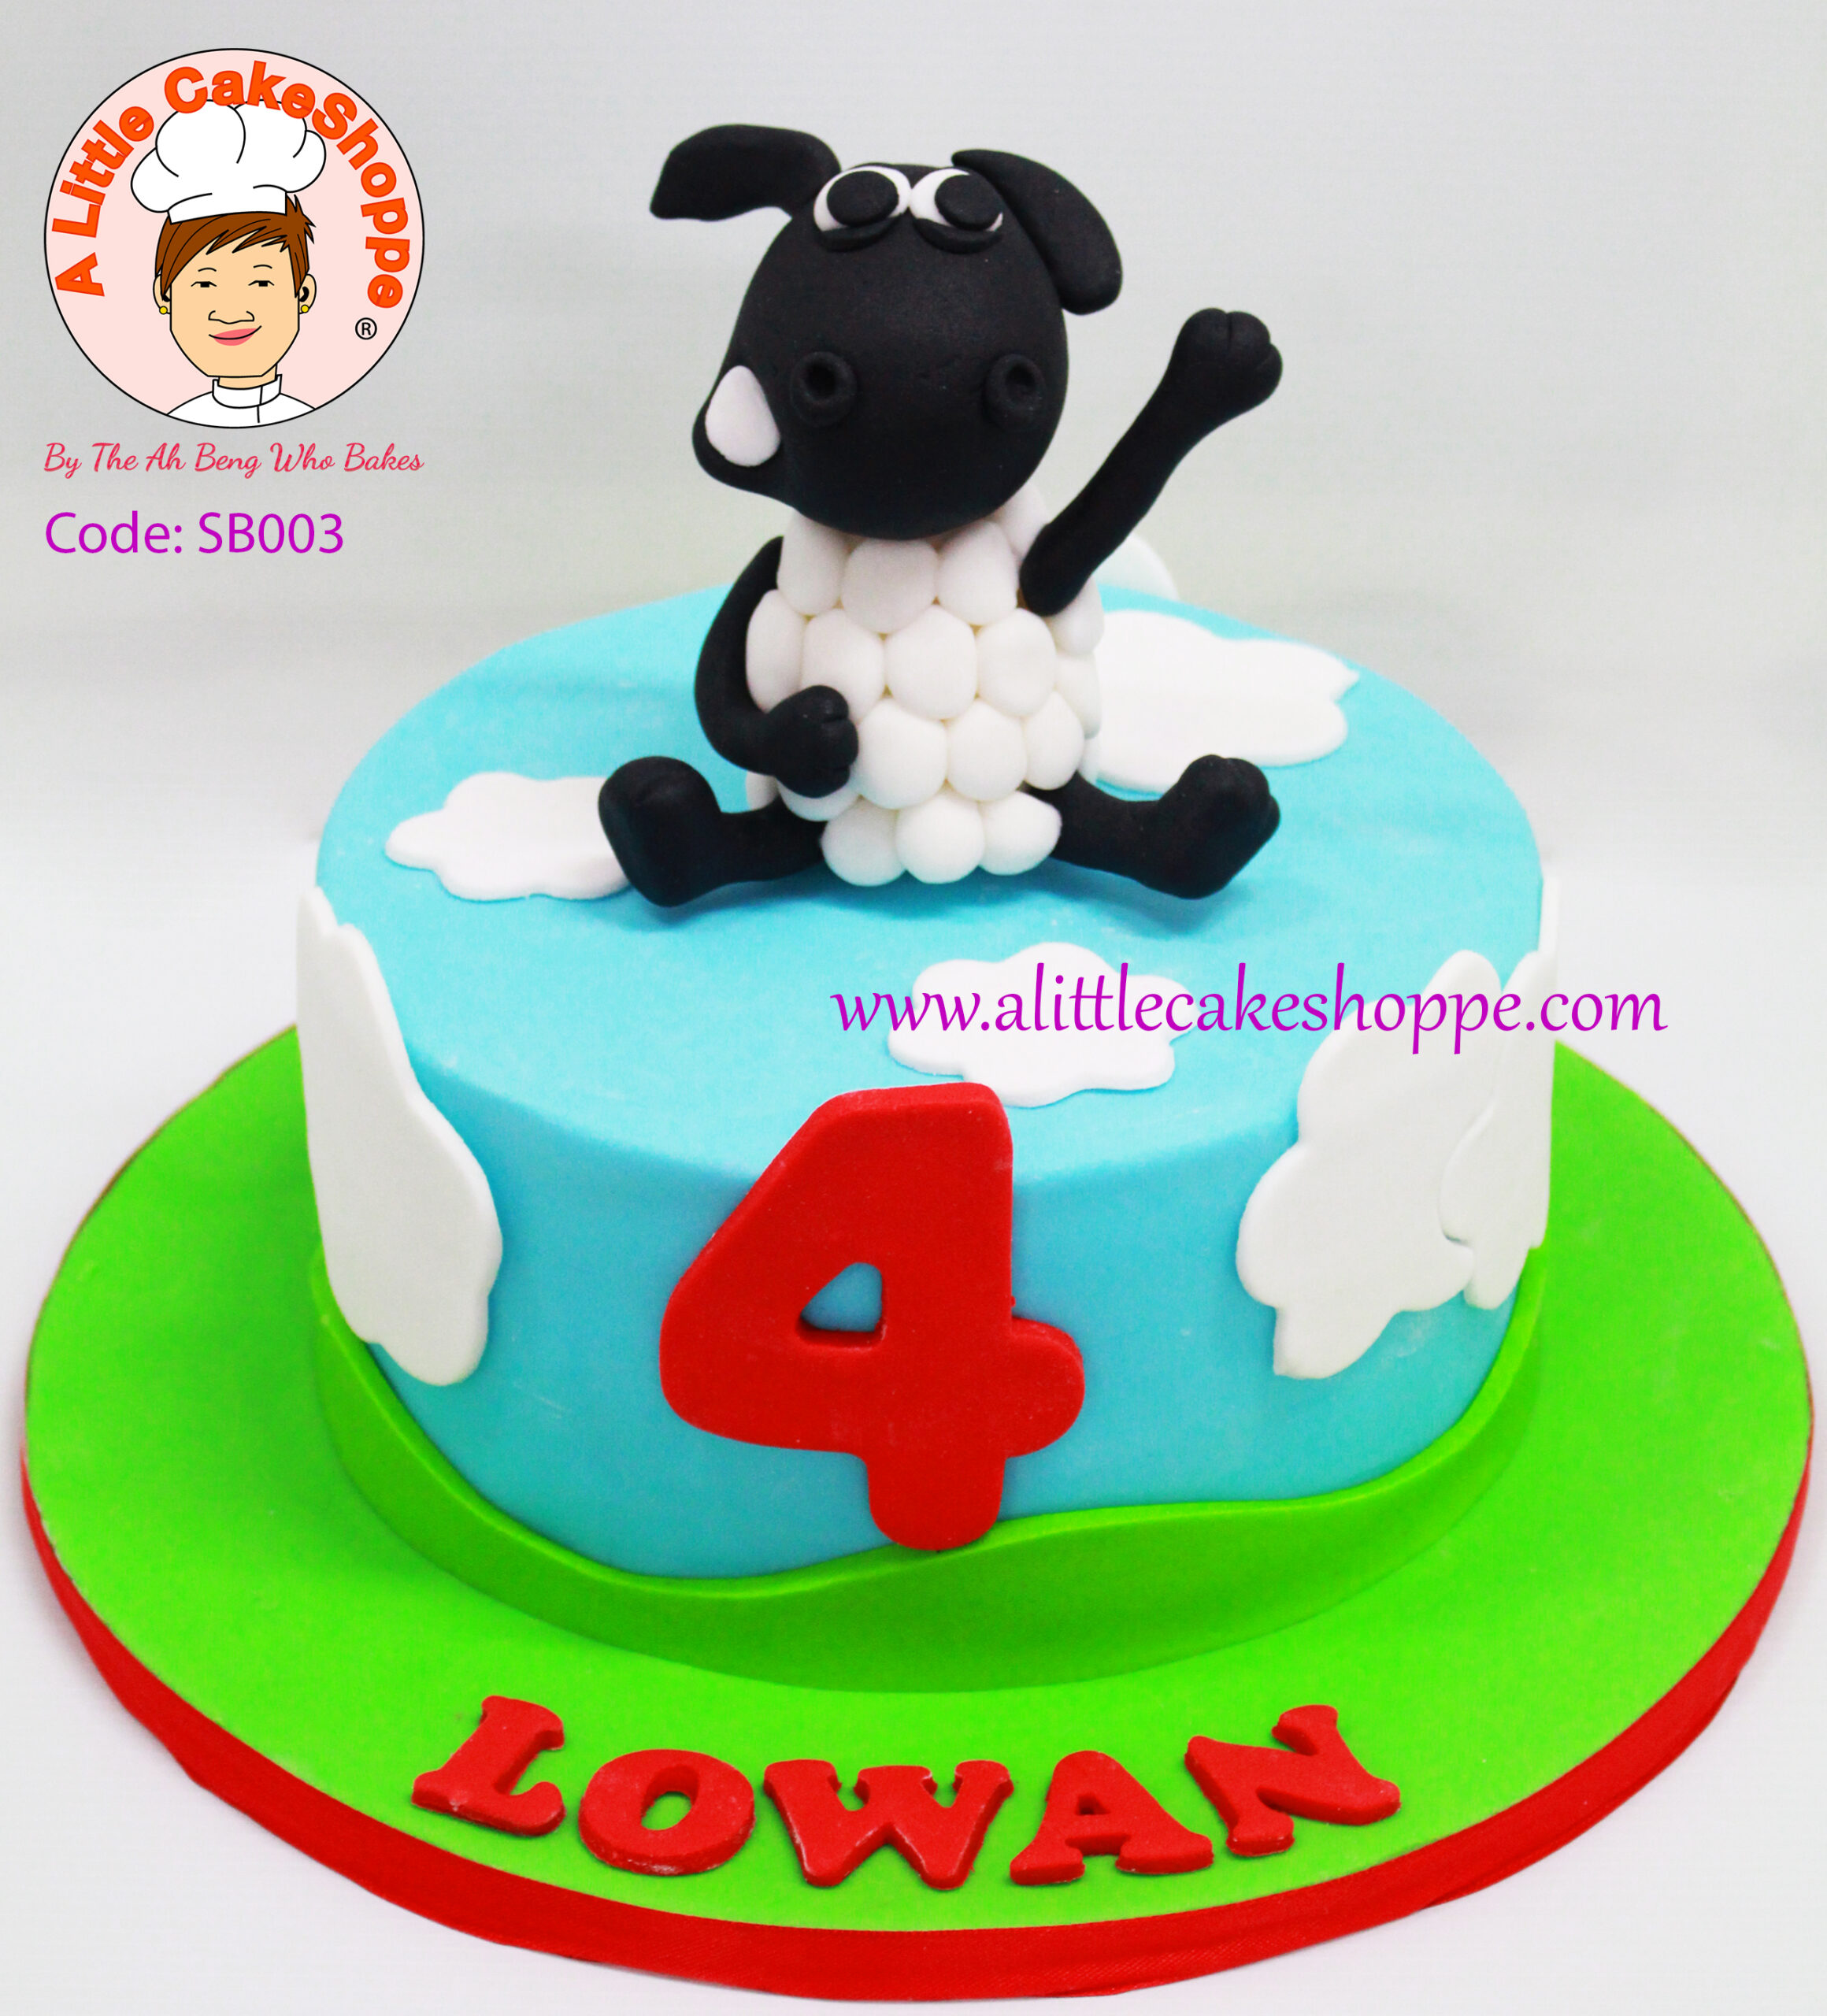 Best Customised Cake Singapore custom cake 2D 3D birthday cake cupcakes desserts wedding corporate events anniversary 1st birthday 21st birthday fondant fresh cream buttercream cakes alittlecakeshoppe a little cake shoppe compliments review singapore bakers SG cakeshop ah beng who bakes timmy time